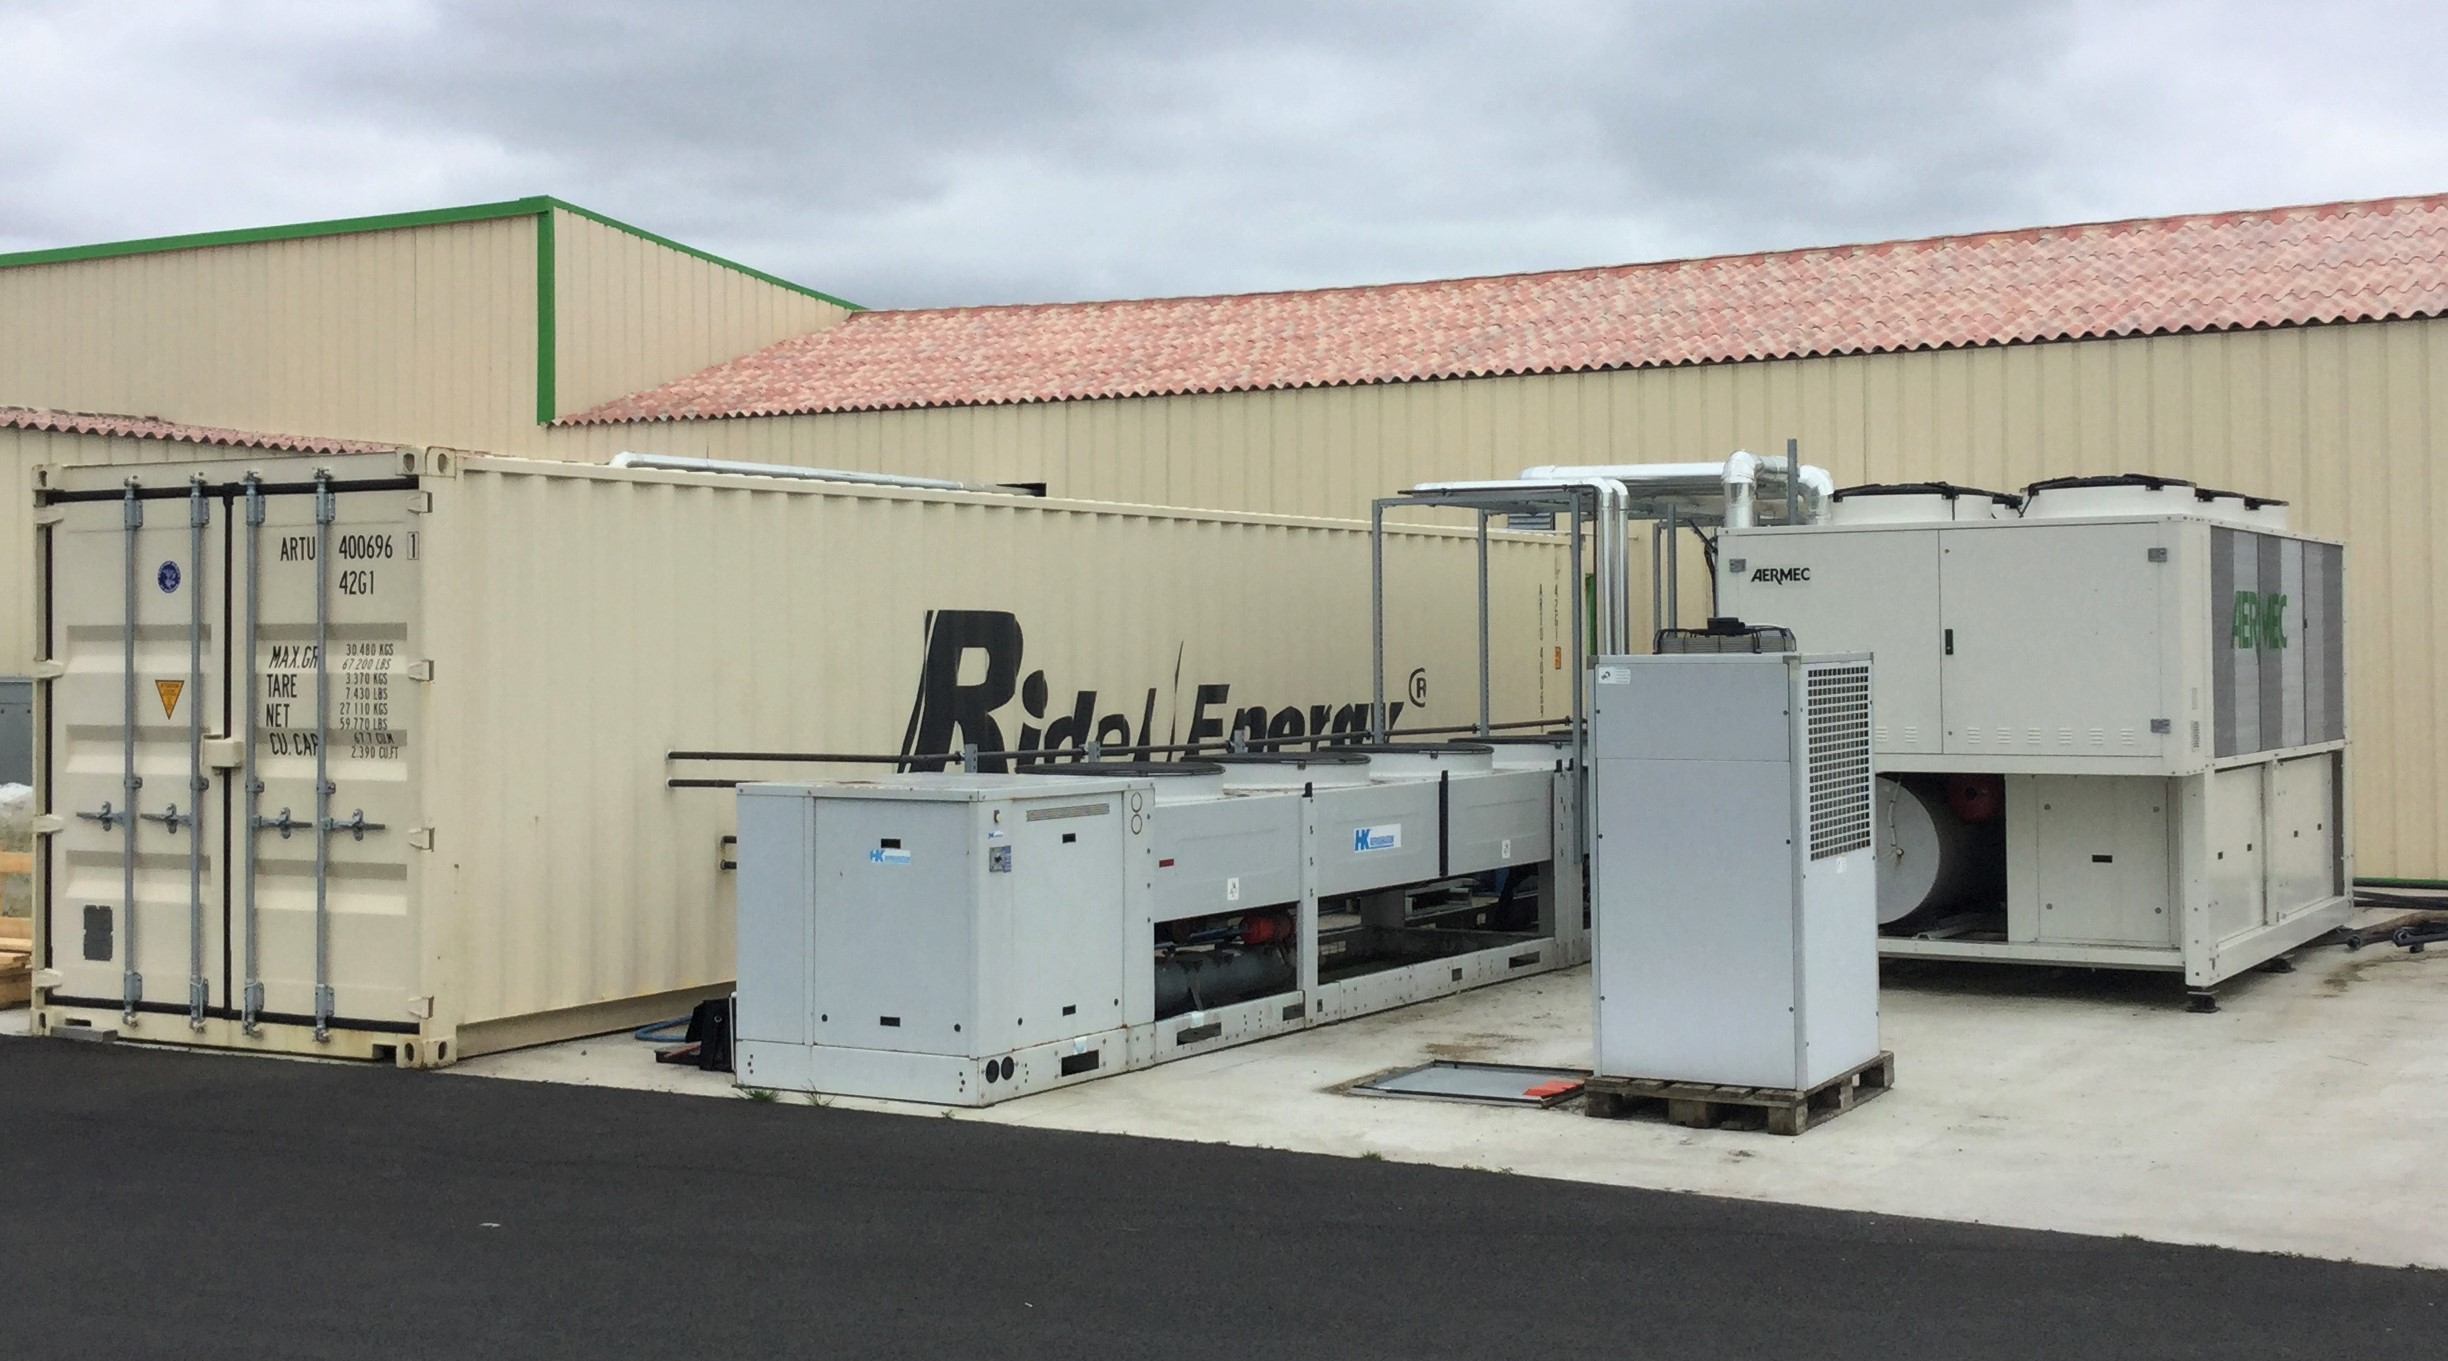 Heat Recovery on Refrigeration Installation RidelCub Ridel Energy Industrial refrigeration heat recovery Ridel/Cub